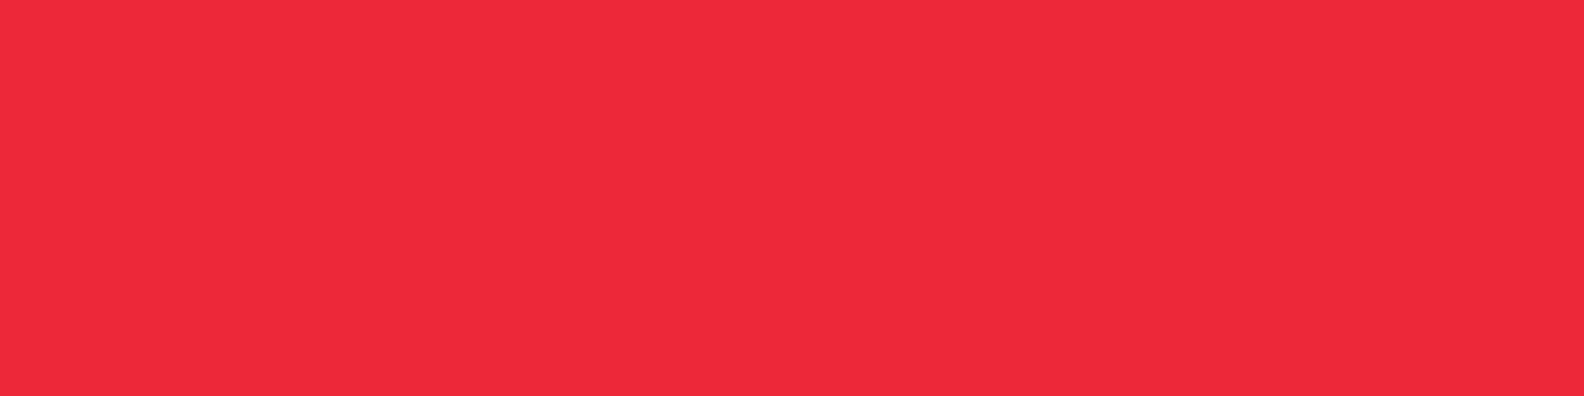 1584x396 Red Pantone Solid Color Background